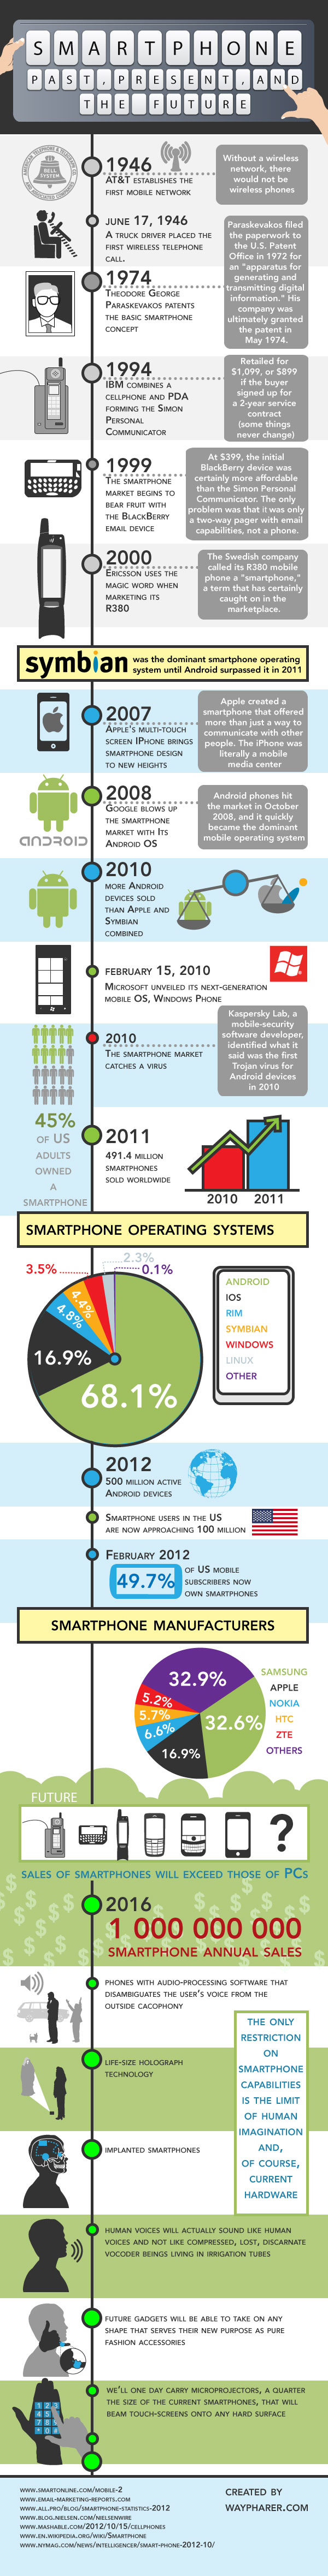 smartphones past present future